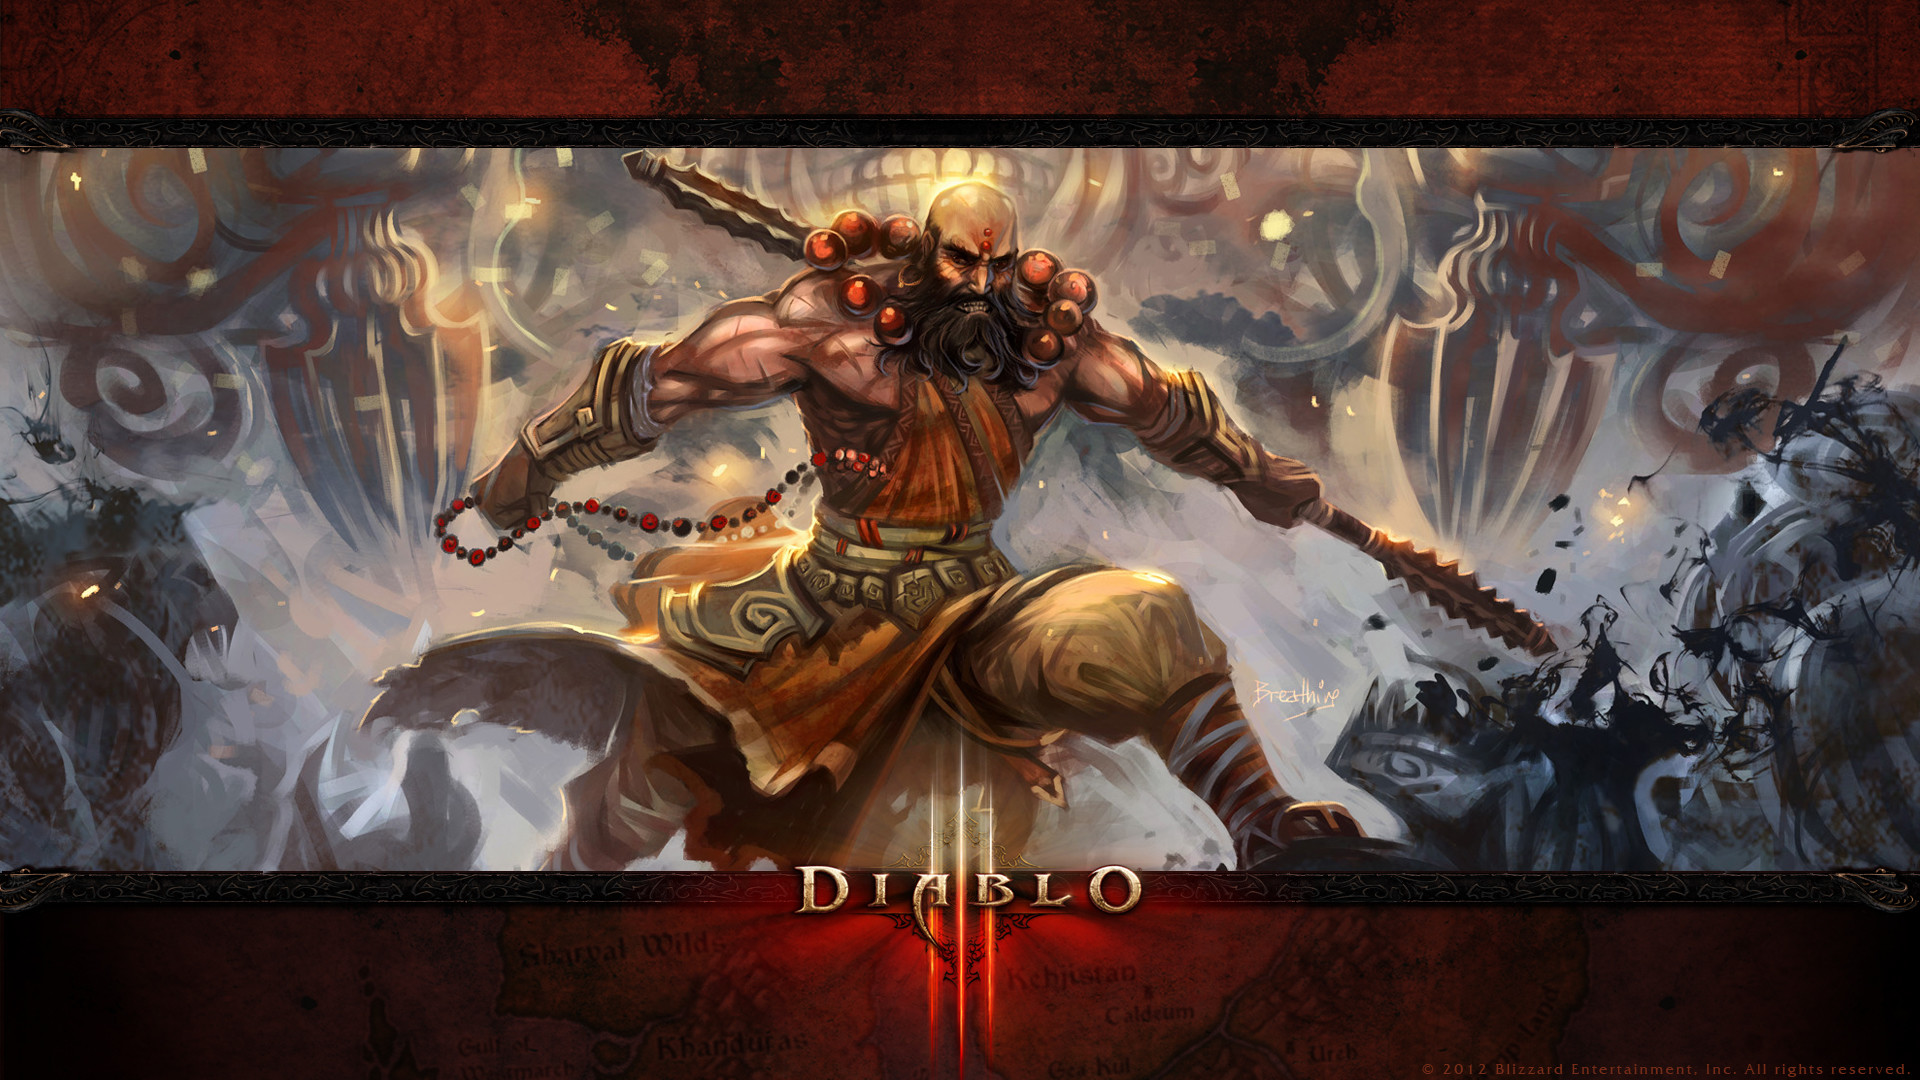 1920x1080 Photo Collection Wallpaper Diablo 3 Character New Diablo 3 wallpaper | Diablo  III | Pinterest | RPG, Game art .